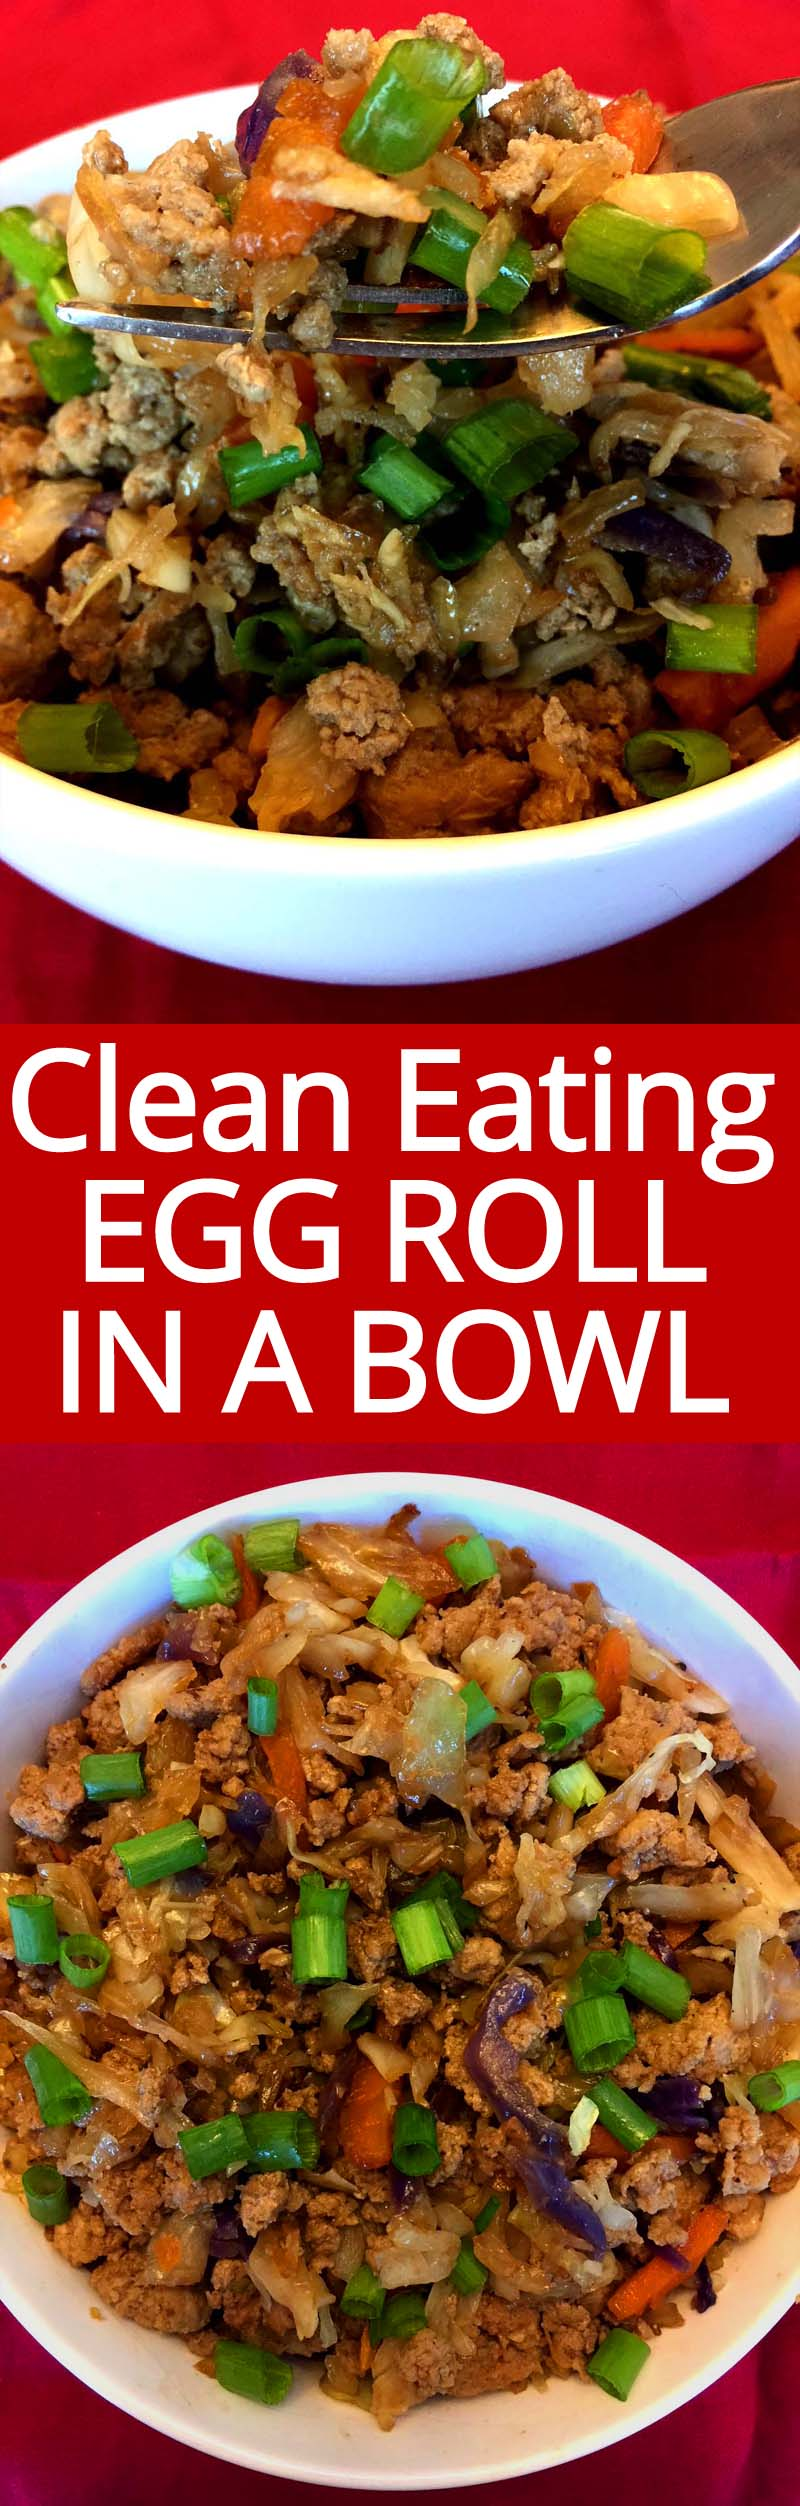 Egg Roll In A Bowl is the ultimate healthy low-carb dinner! YUM YUM YUM! So easy, I make it at least once a week!!!